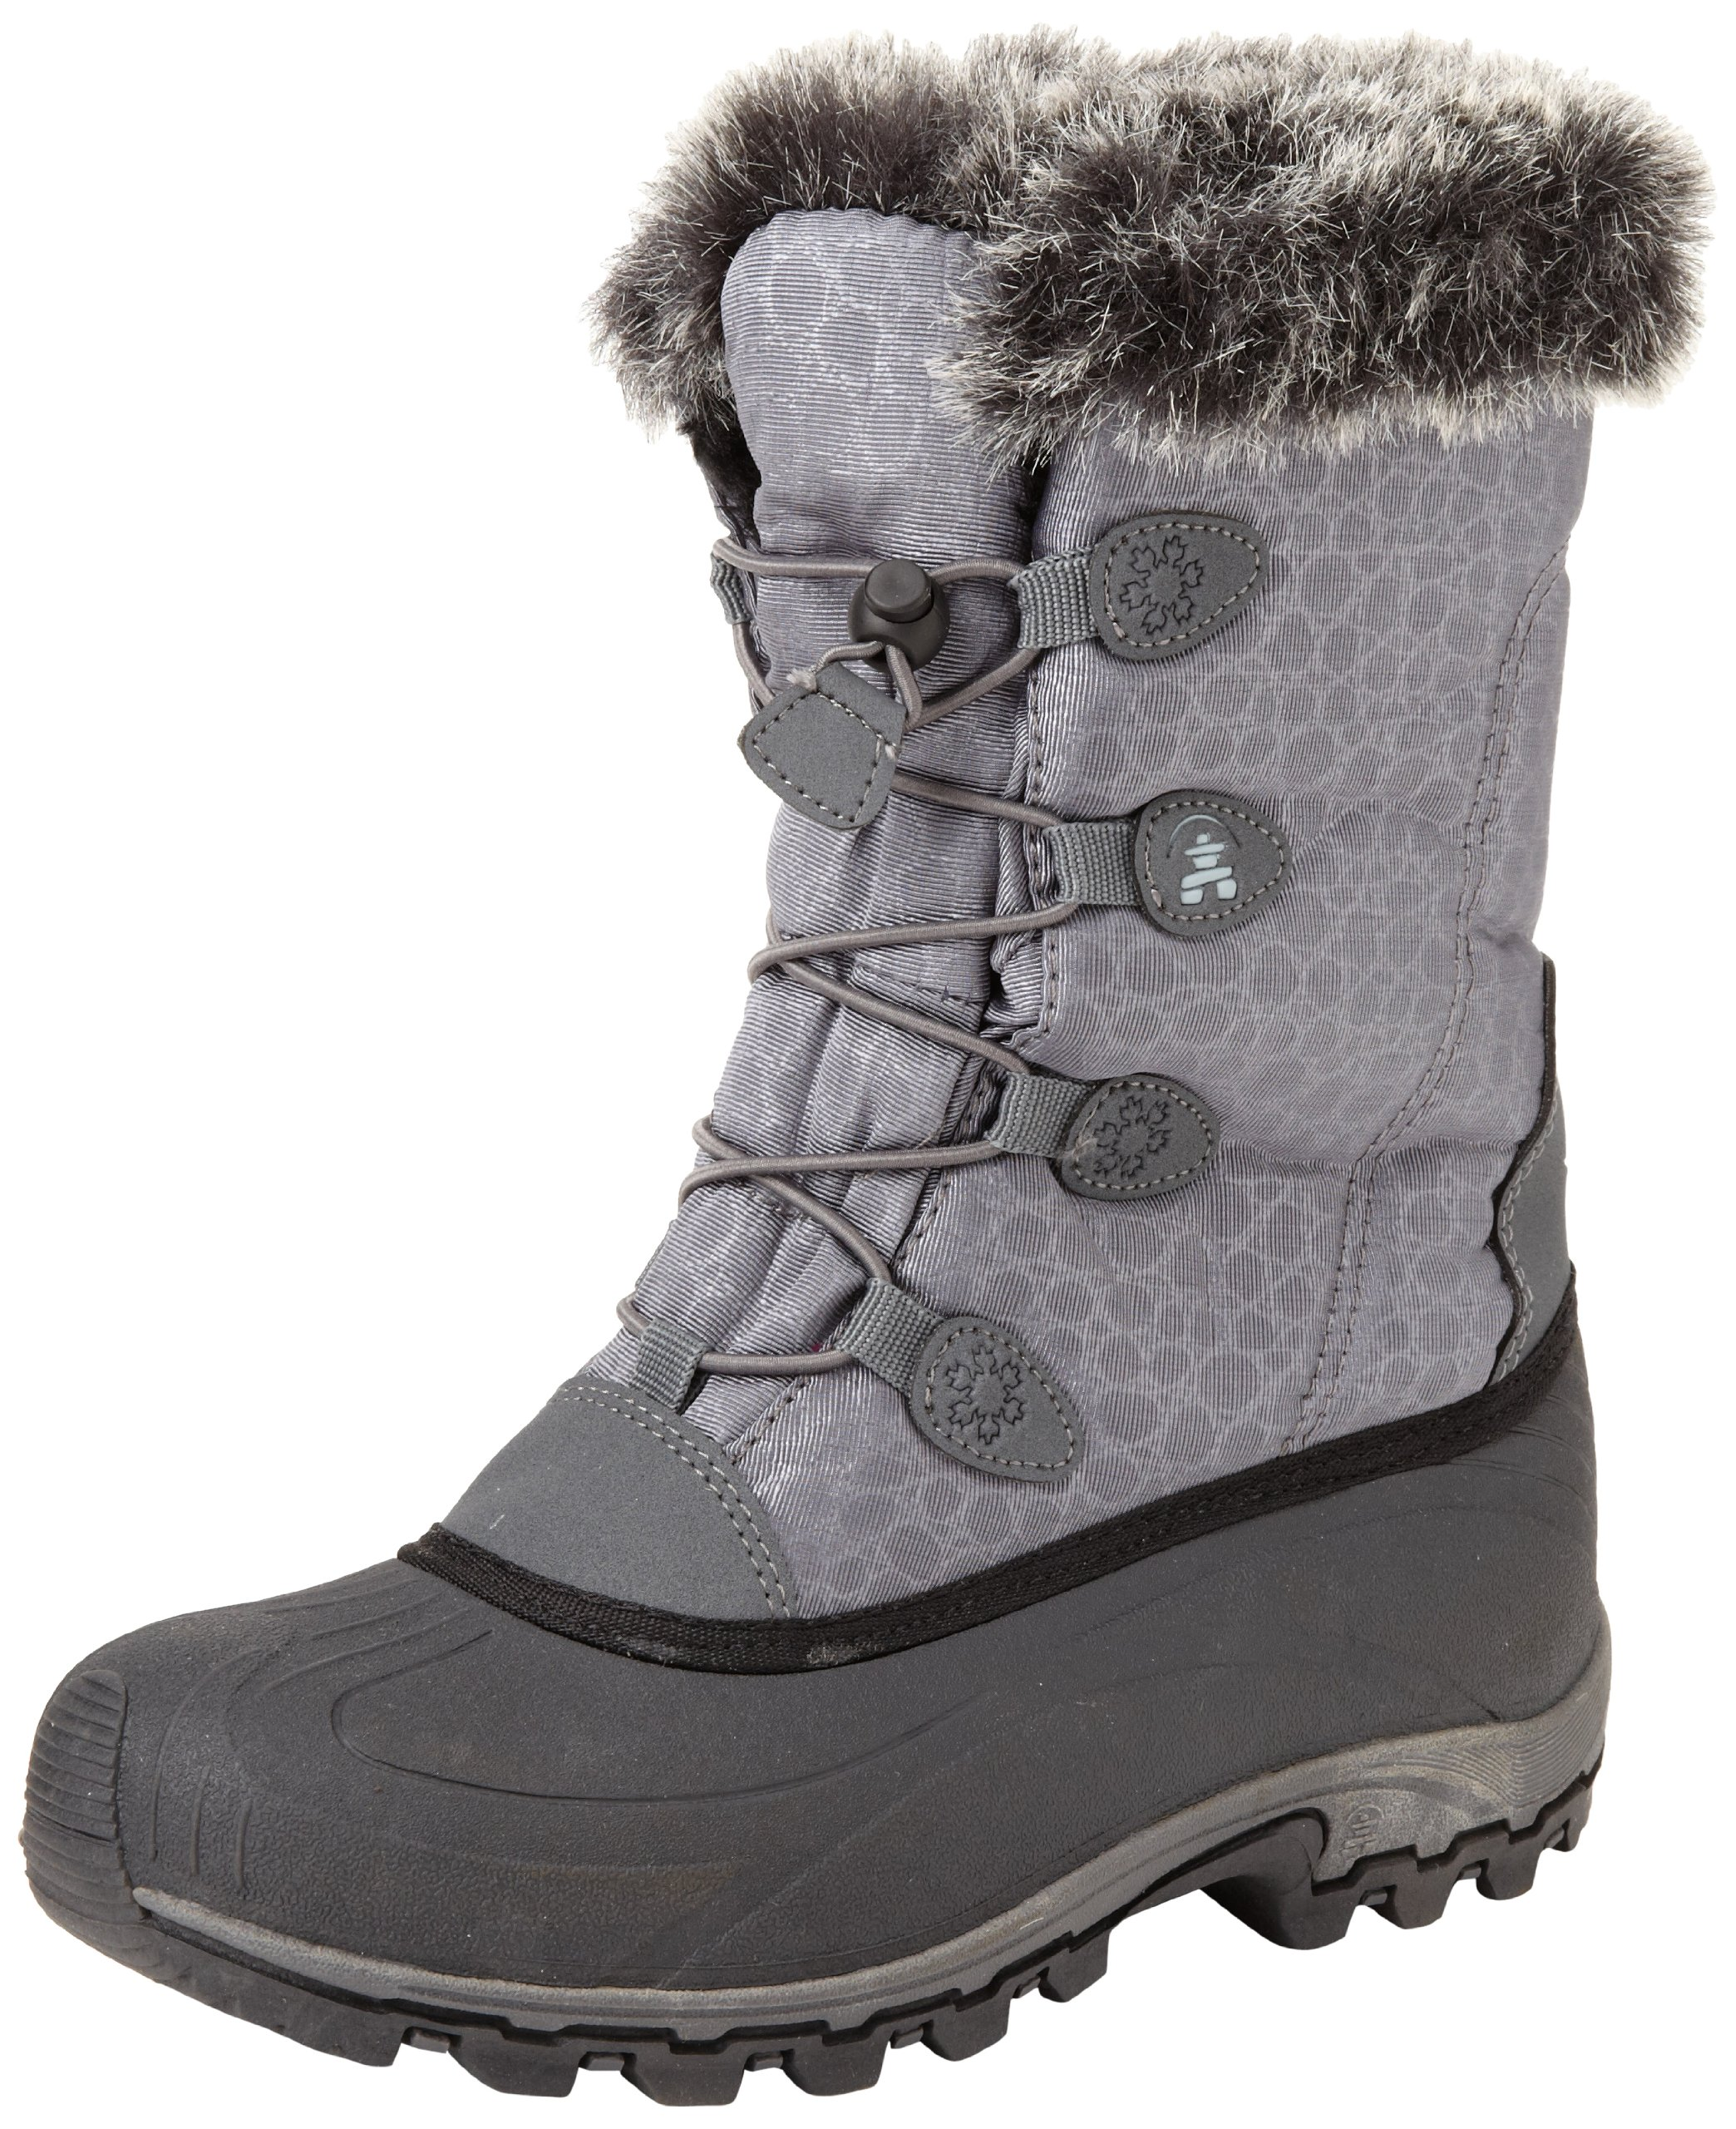 e7c387571192 Best Rated in Women s Snow Boots   Helpful Customer Reviews - Amazon.com